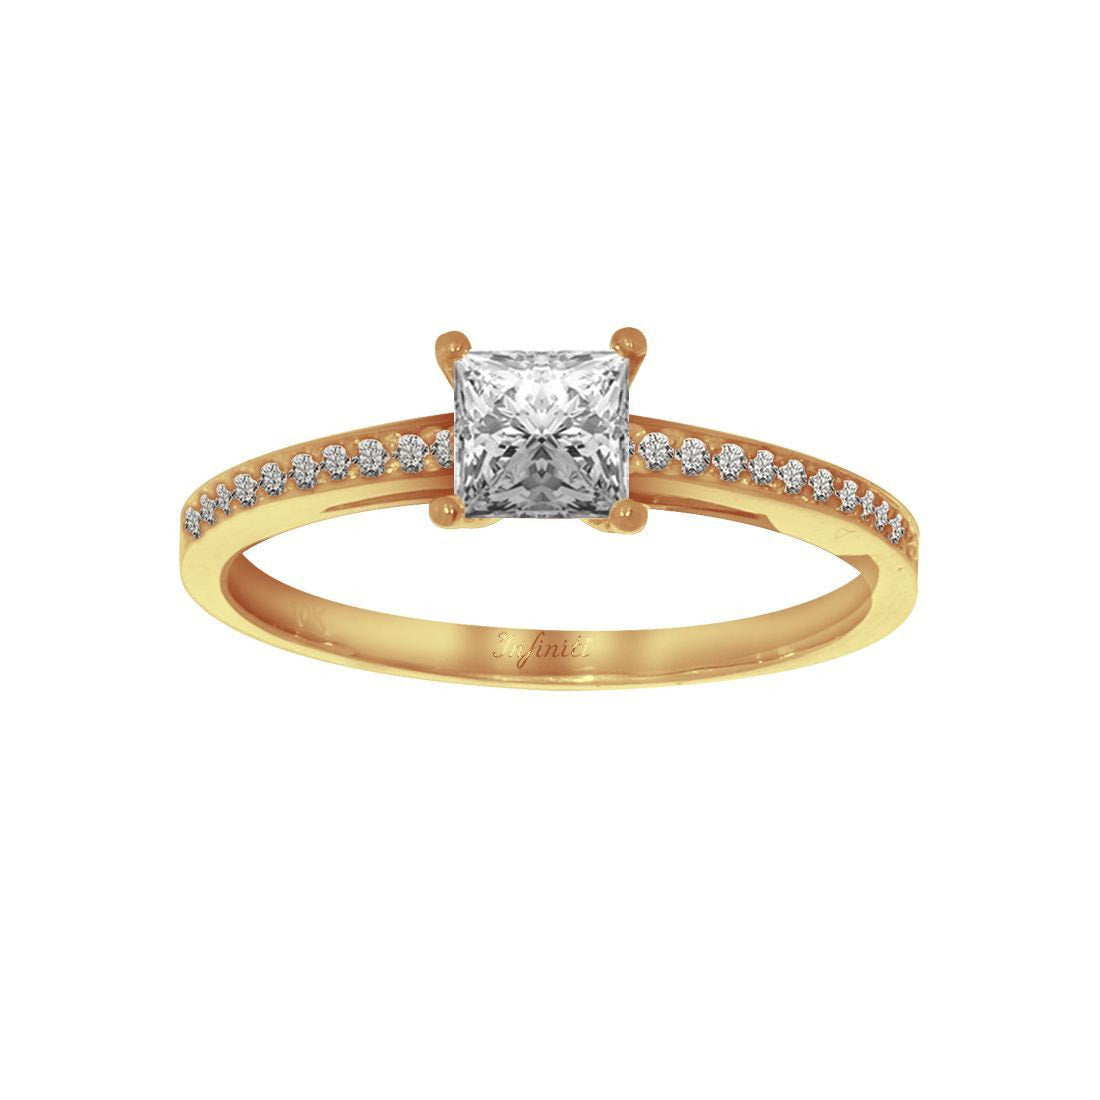 Anillo Oro 10k, Zirconia Central Princess de 4.5 mm, Laterales 1 mm